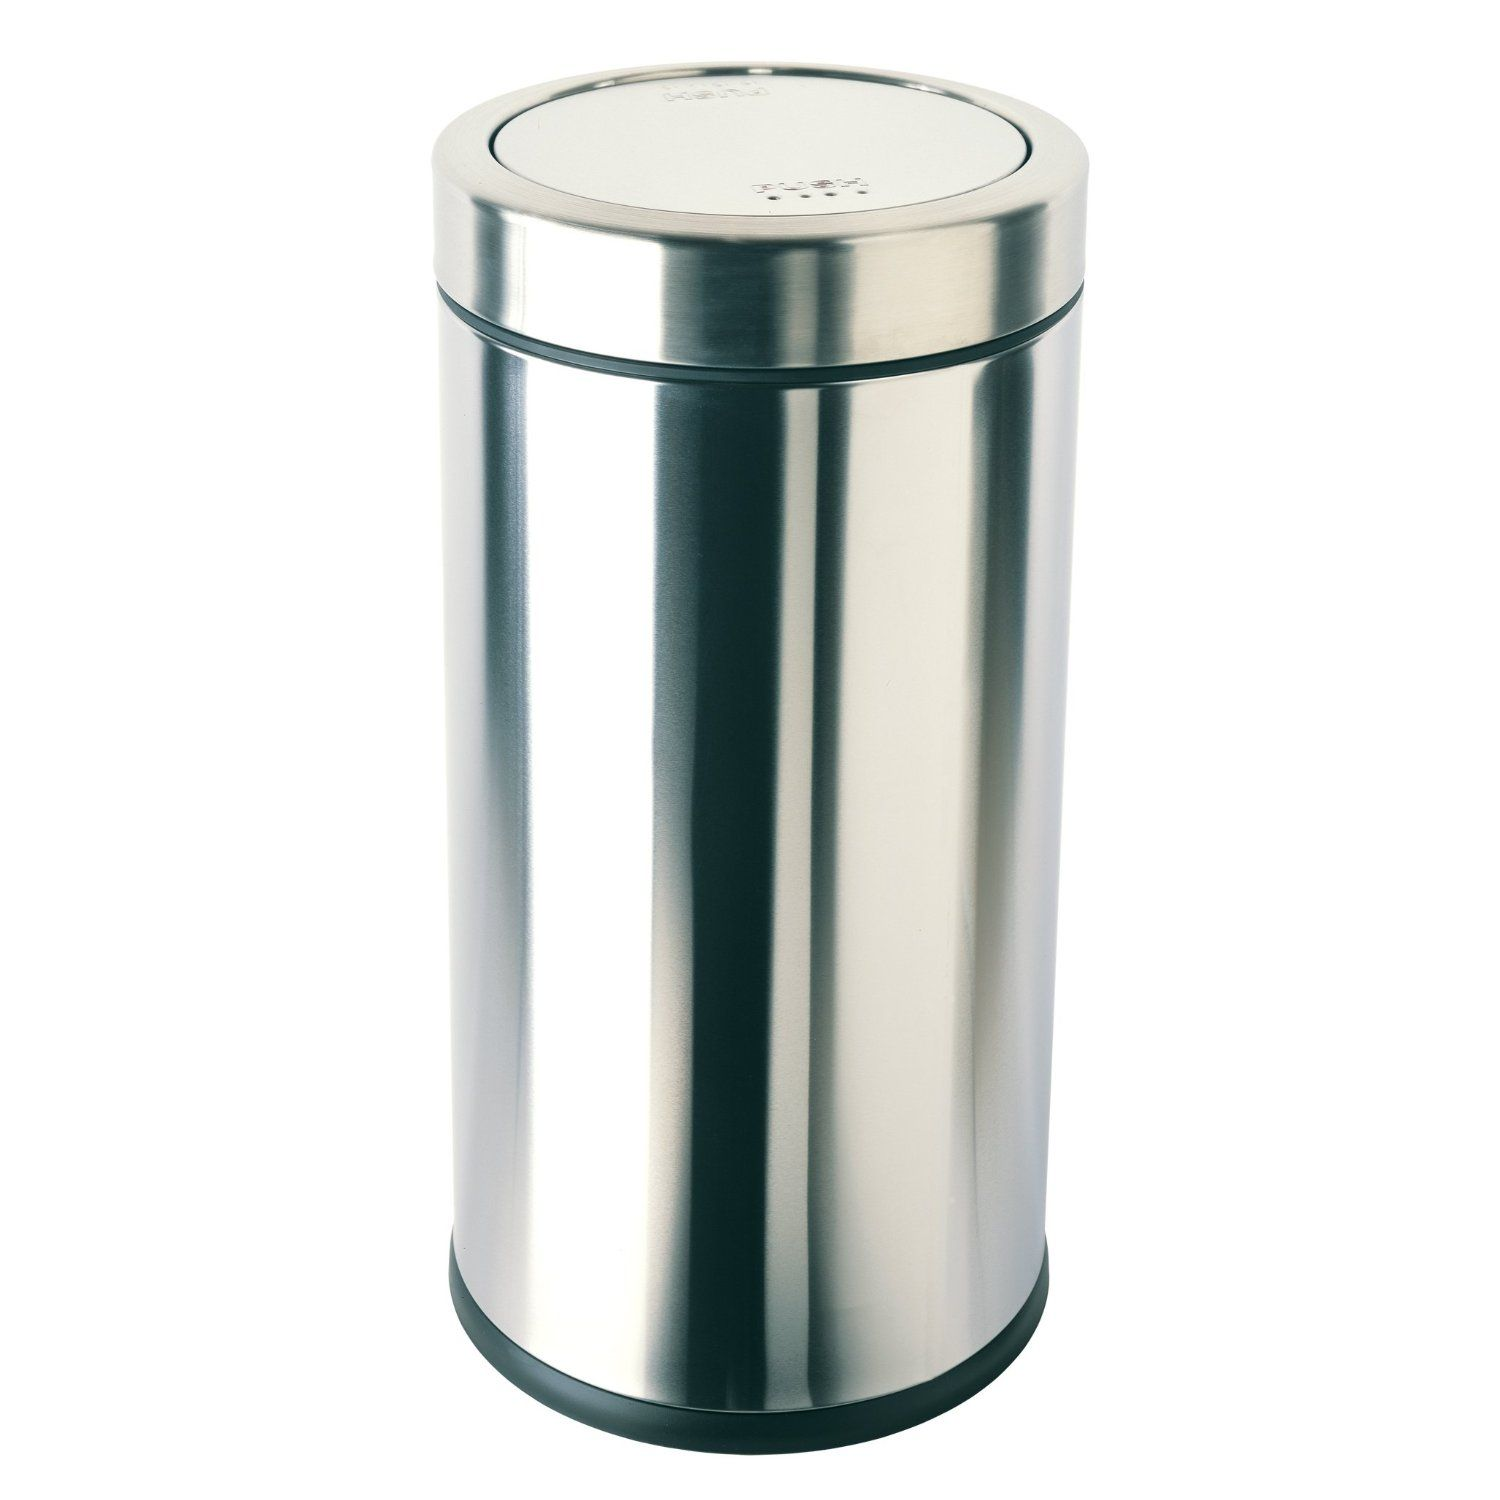 Http Www Amazon Com Gp Product B0002x6h02 Ie Utf8 1789 B0002x6h02 Xm2 Youtubeamazon03 20 Simplehuman Trash Can Brushed Stainless Steel Stainless steel swing top trash can